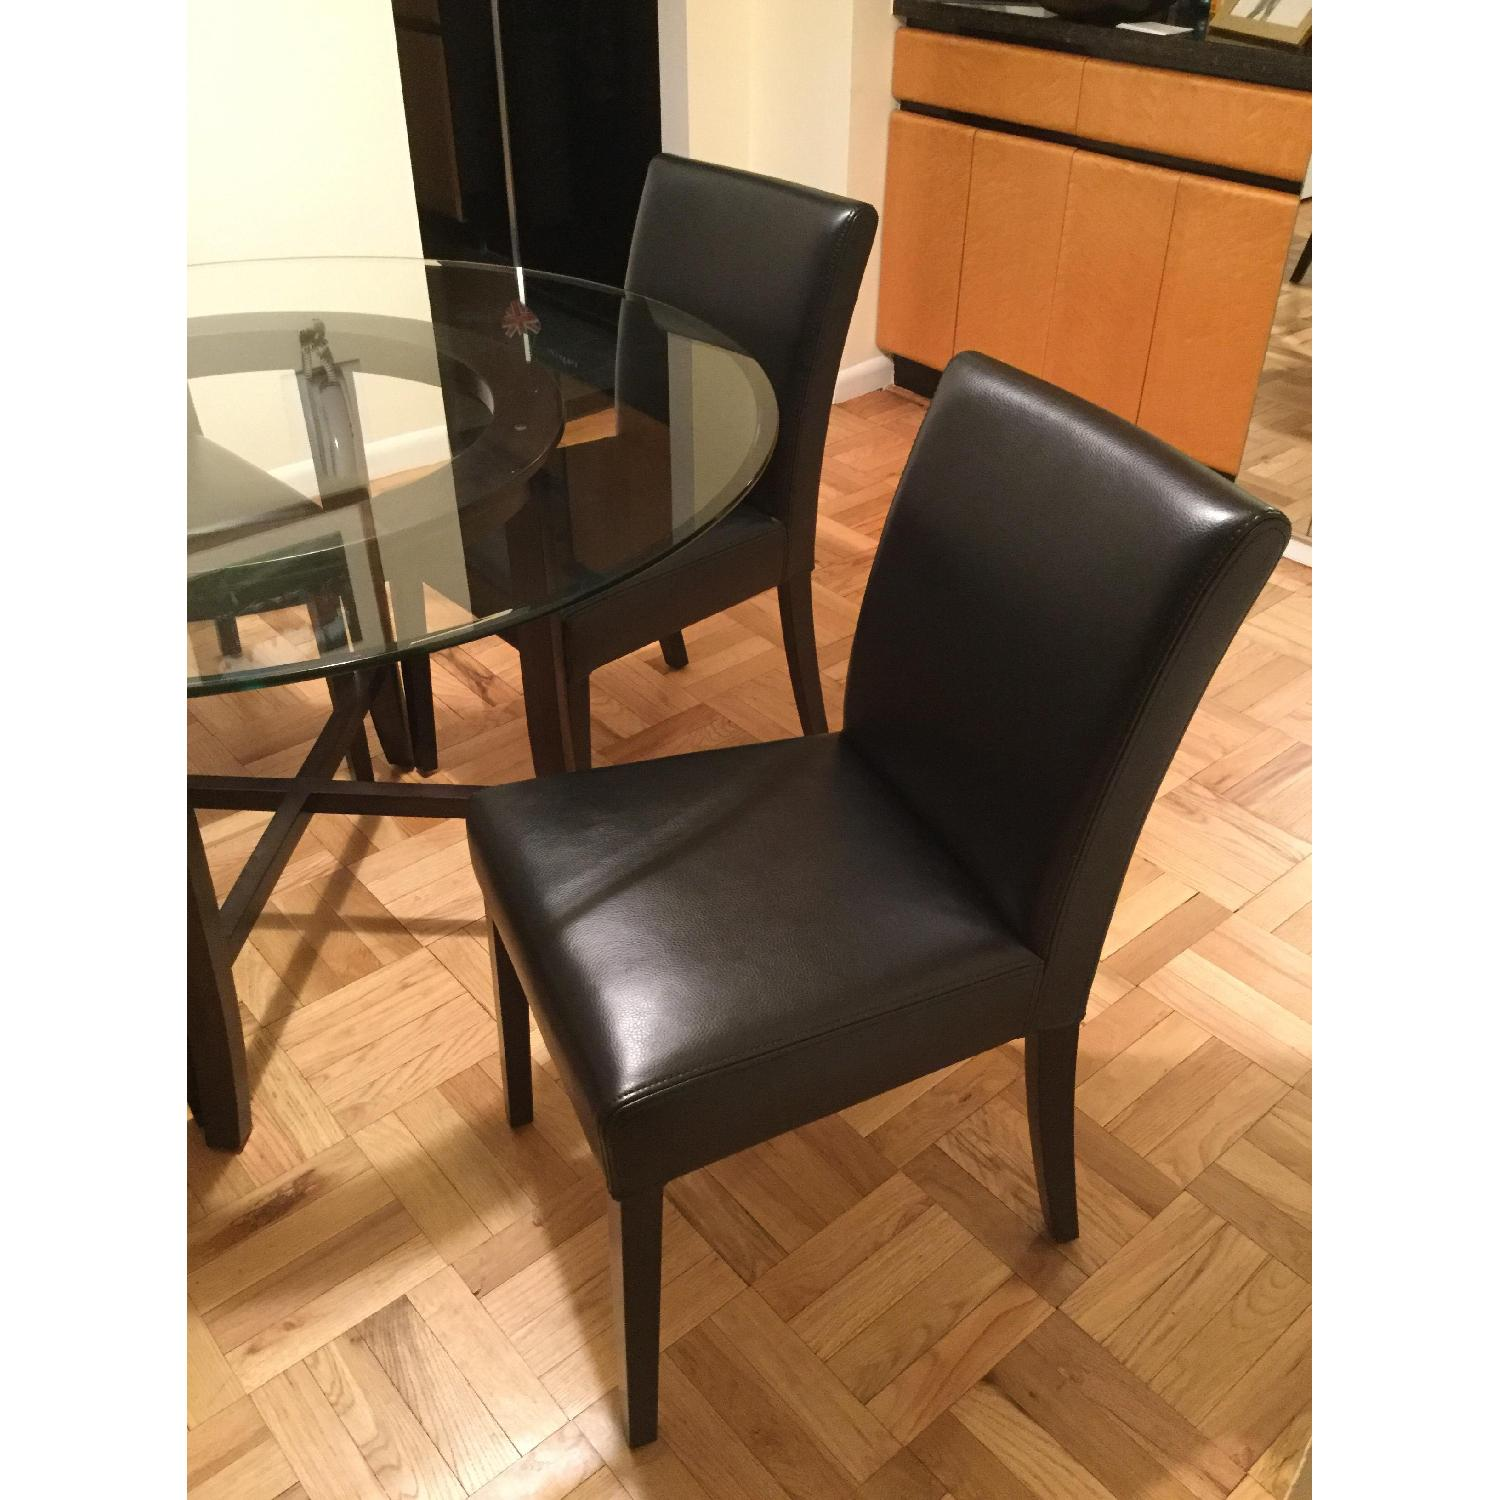 Crate & Barrel Glass Dining Table w/ 4 Black Leather Chairs - image-3